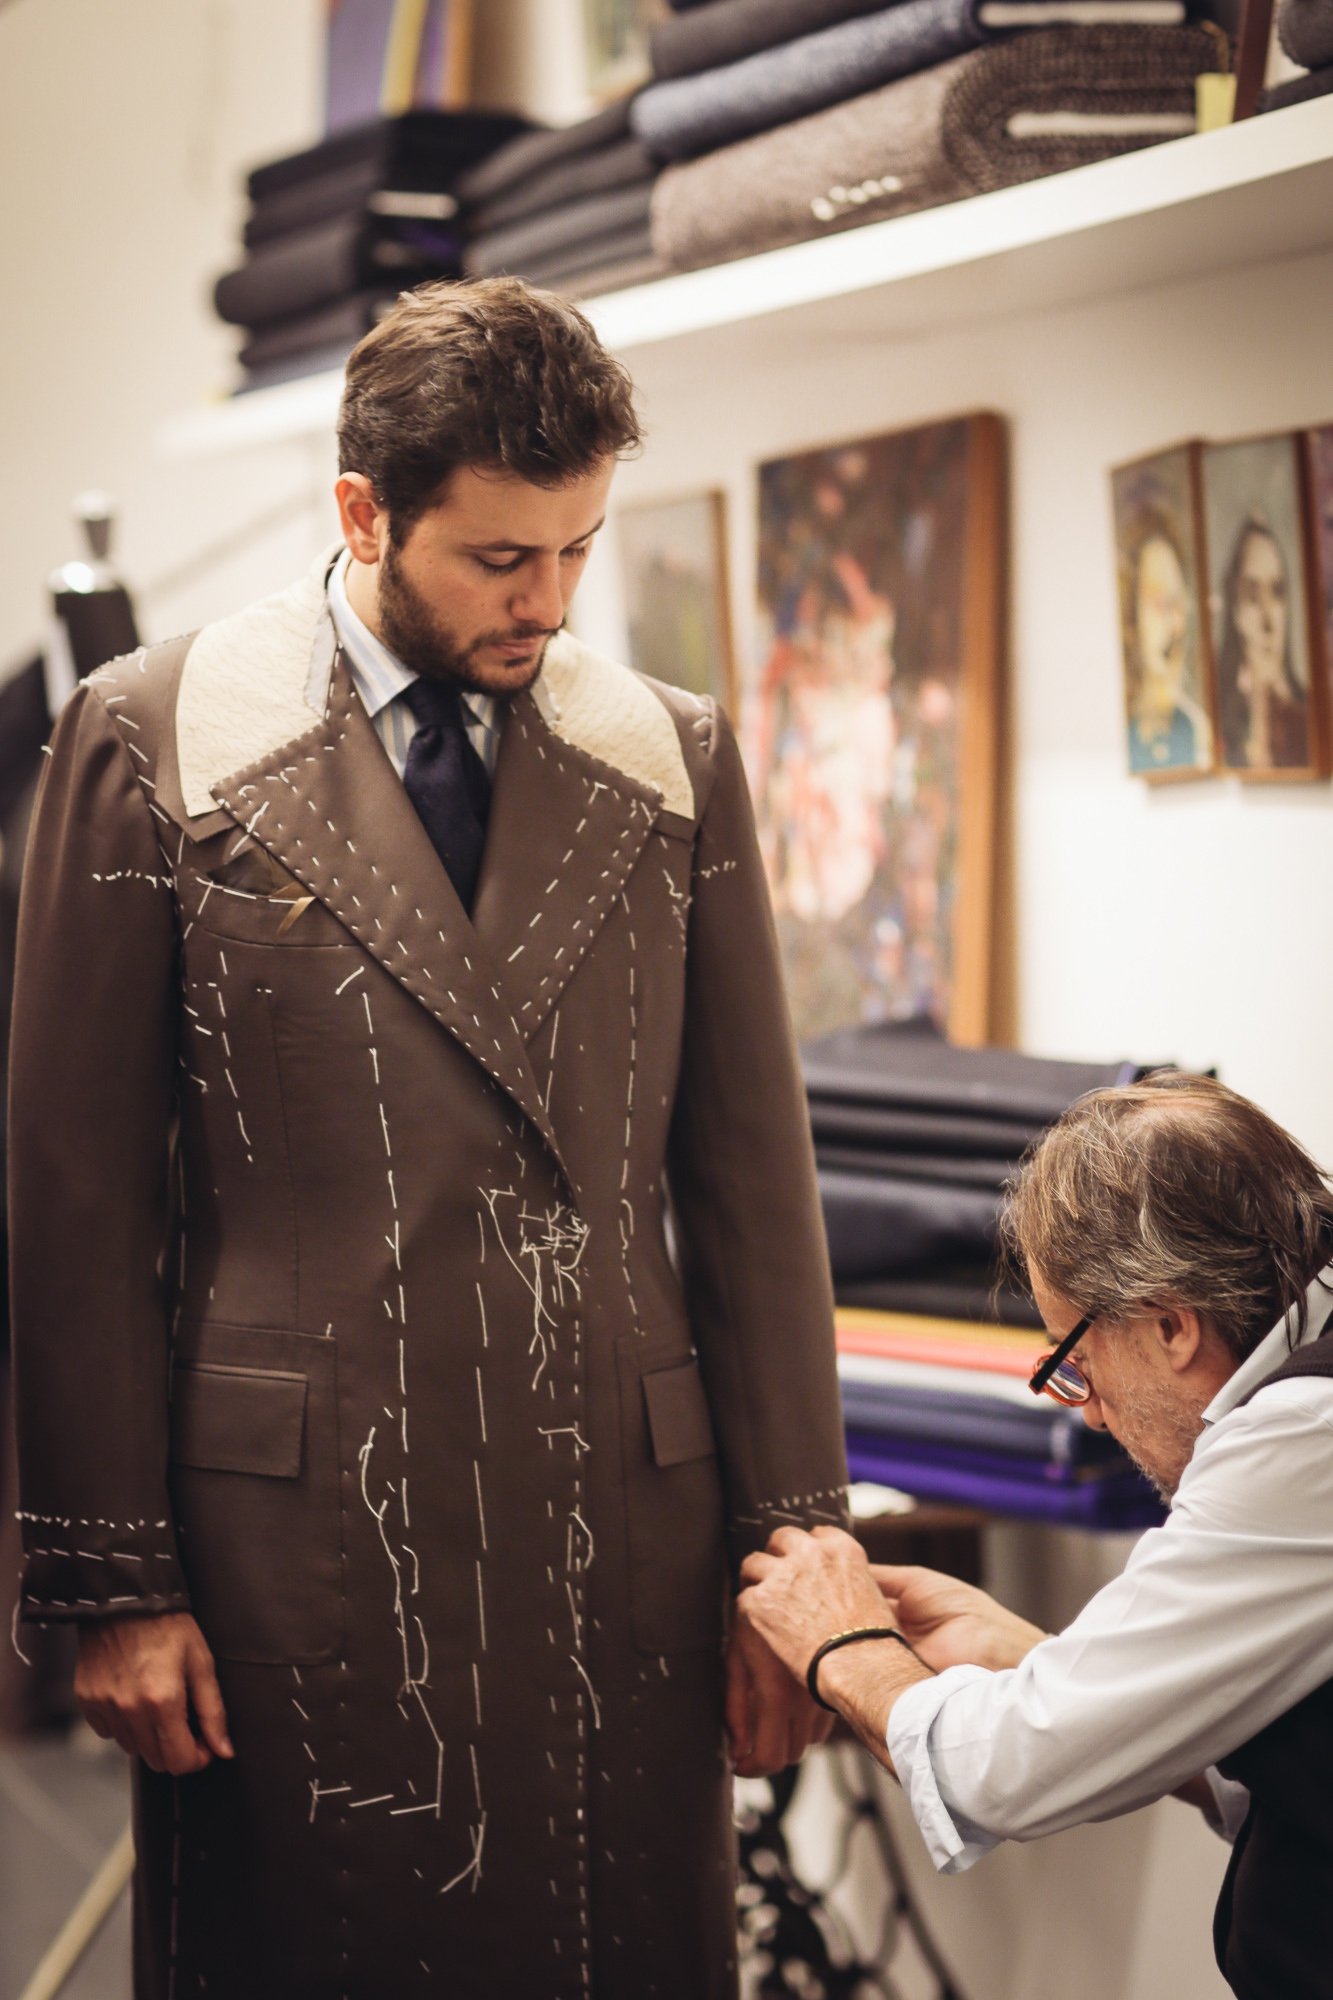 Dalcuore Ulster Coat - Part II First and Second Fitting